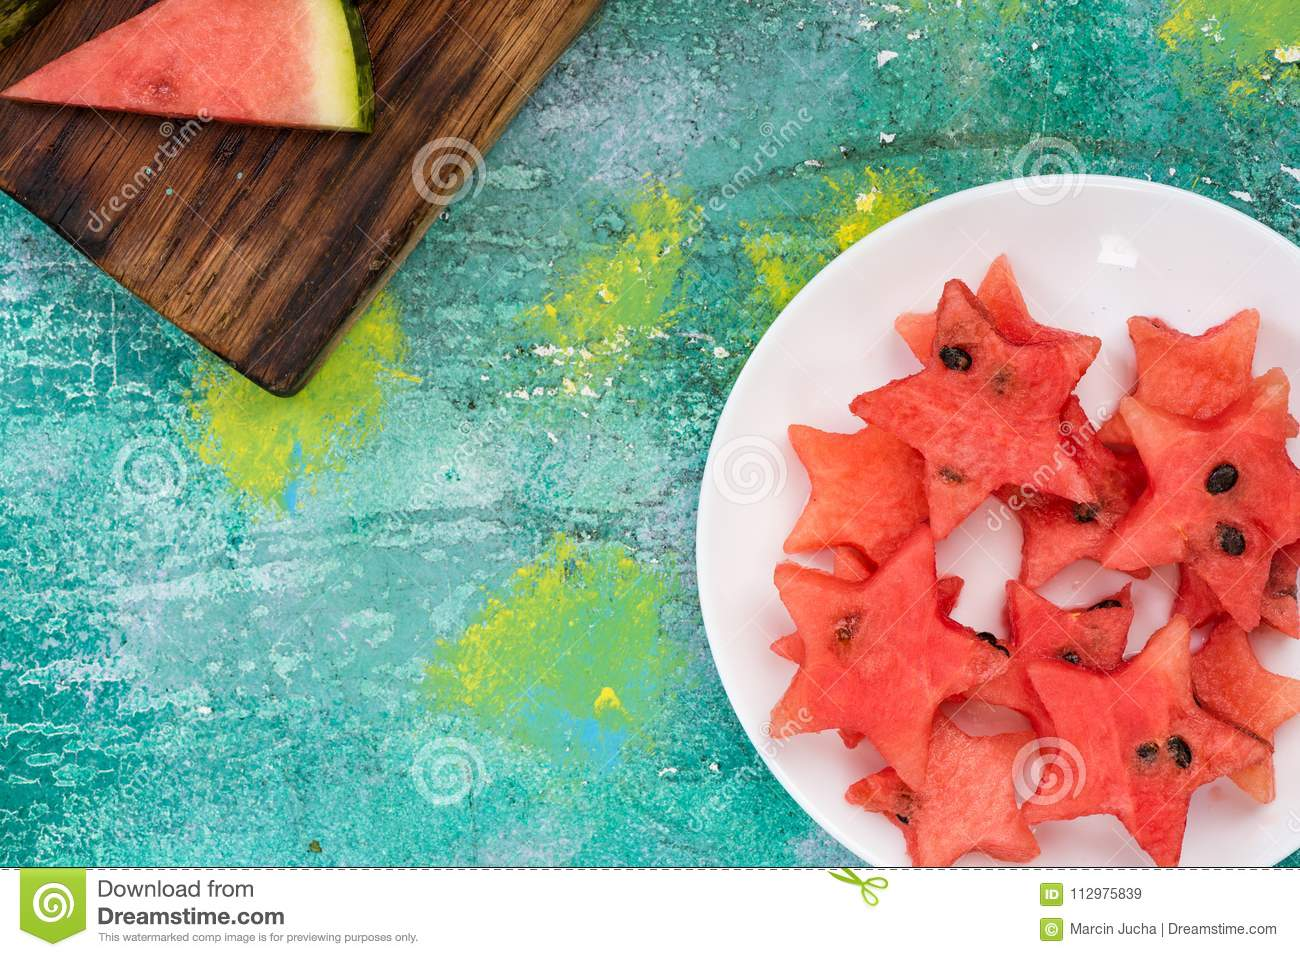 Star shapes cut off from fresh watermelon